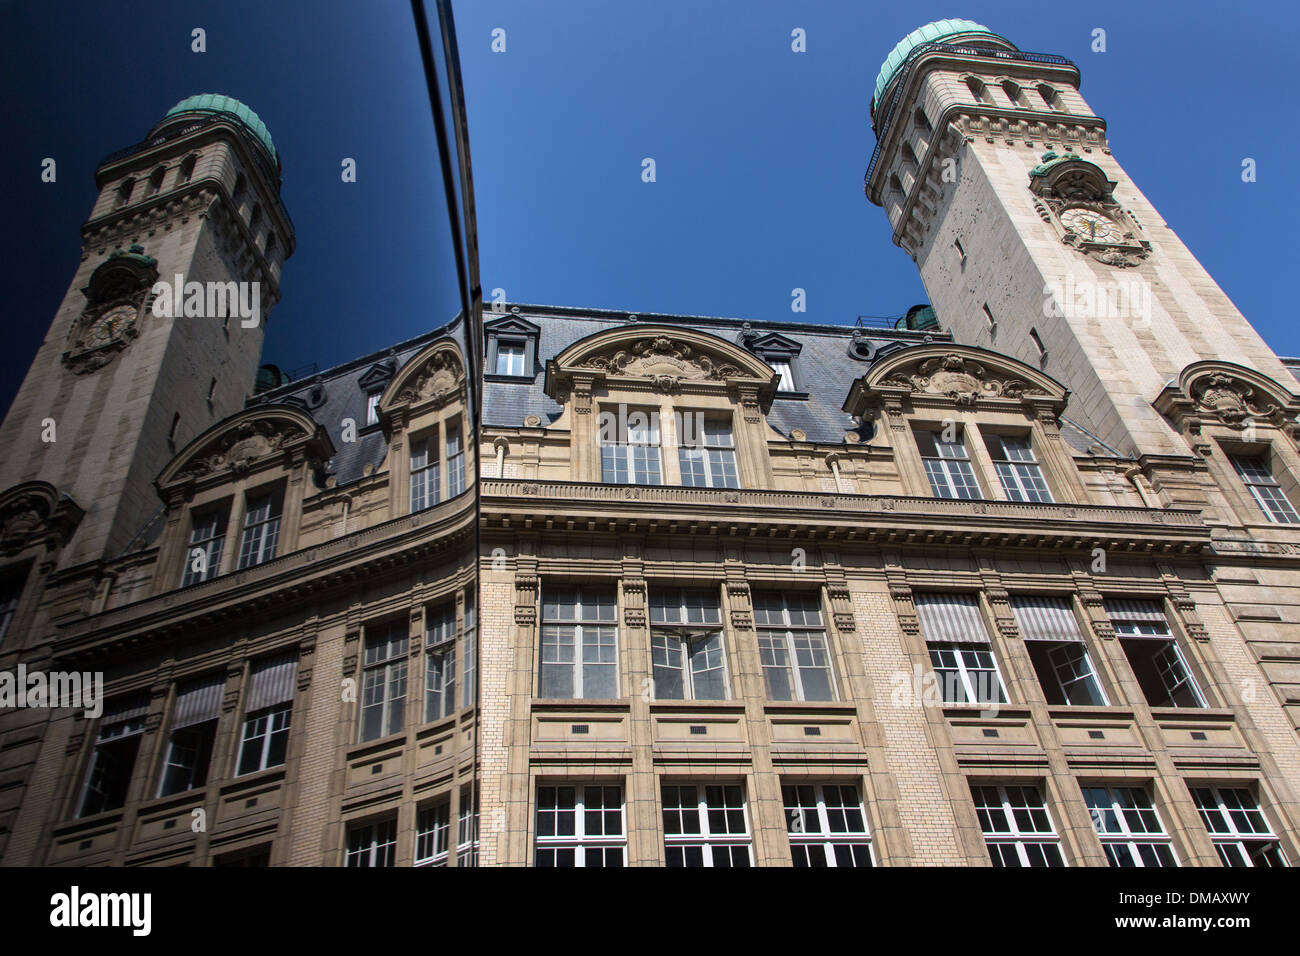 FACADE AND TOWER OF THE SORBONNE (UNIVERSITY OF PARIS), PARIS (75), FRANCE - Stock Image